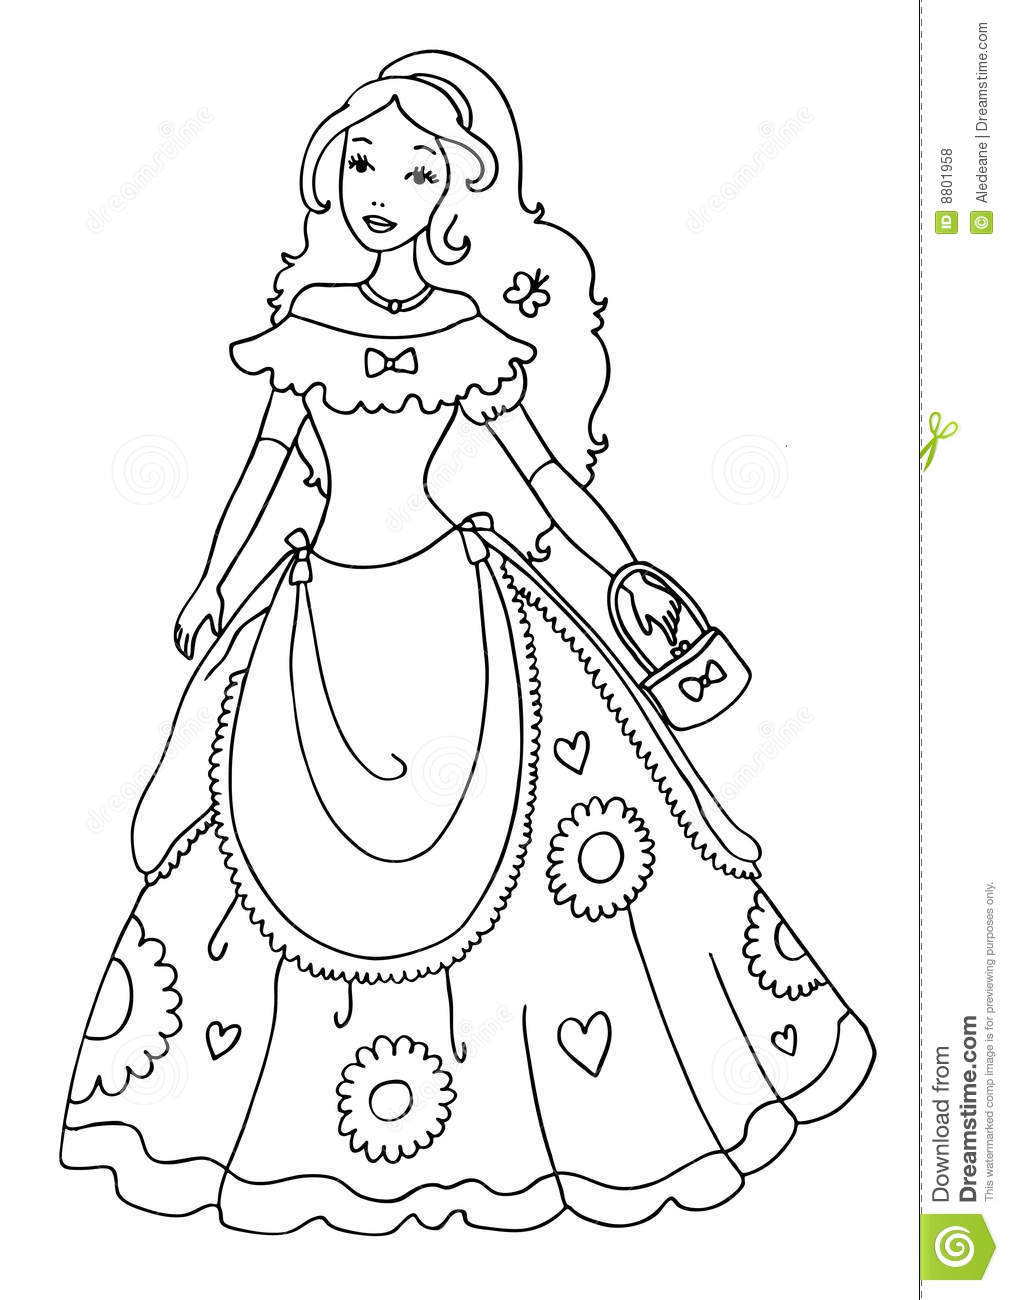 princess color pages - princess coloring page stock illustration illustration of